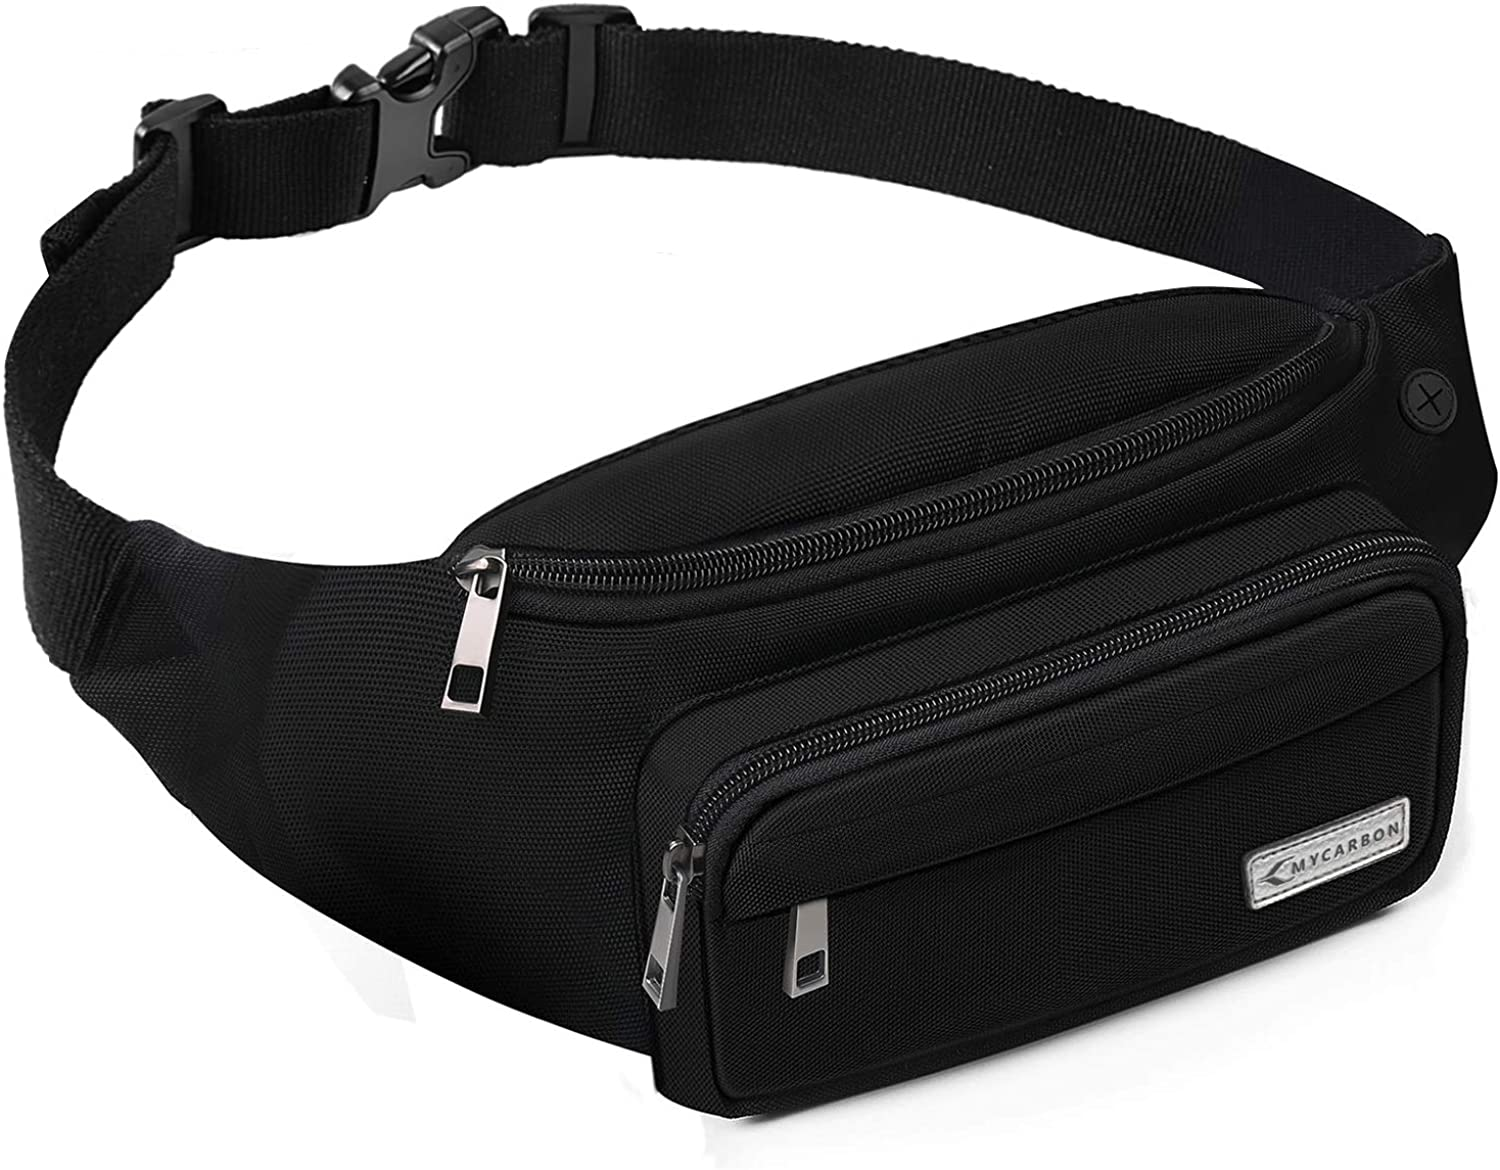 MYCARBON Fanny Pack for Men and Women, Large Fanny Pack Waist Pack Bag Cute Hip Bum NonBounce Belt NonSlip Cotton Durable Pouch with Adjustable Strap for Outdoors Casual Travel Hiking Black